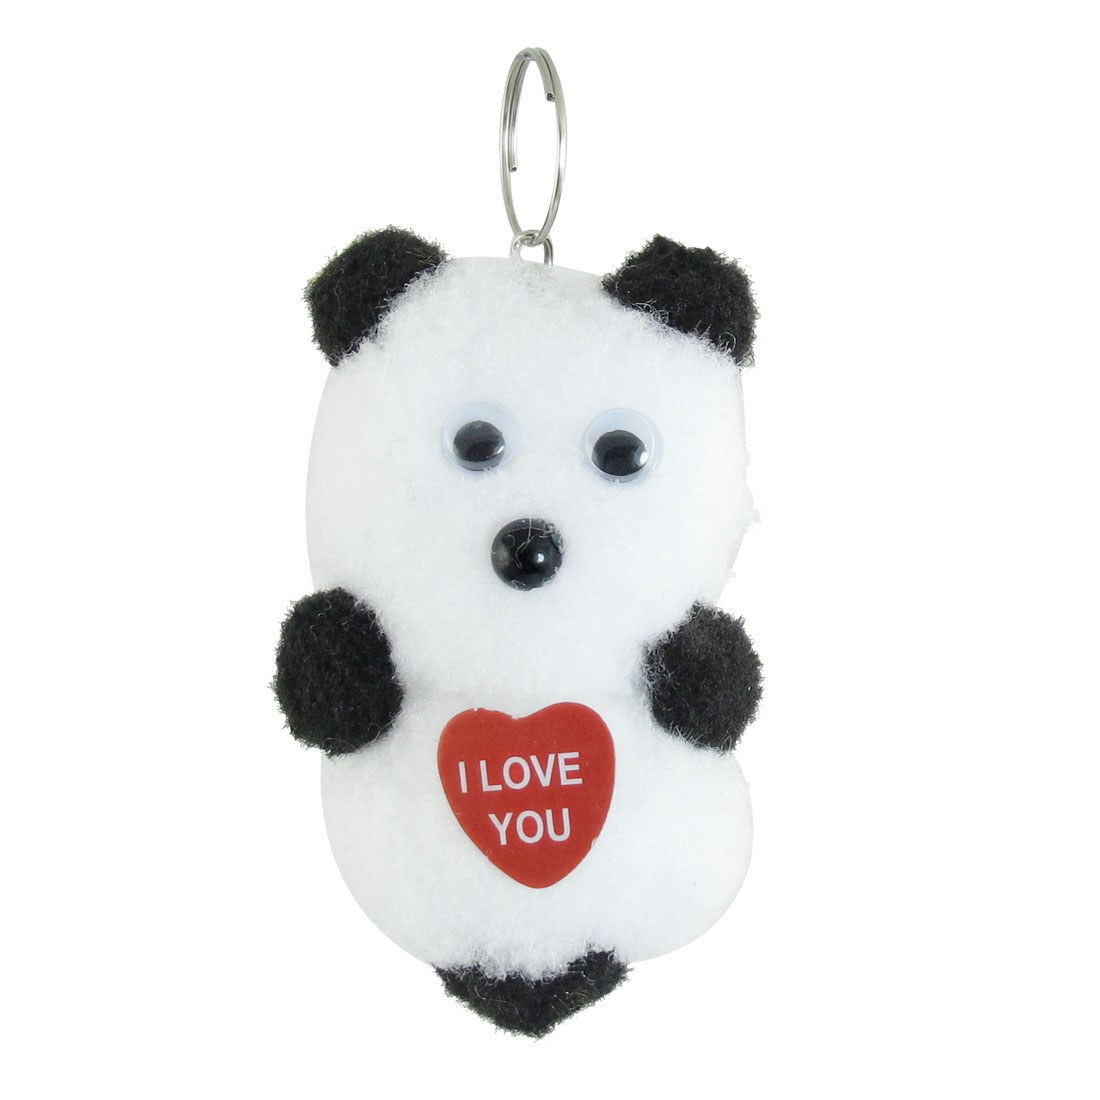 White Black Cotton Blend Panda Shaped Pendant for Handbag